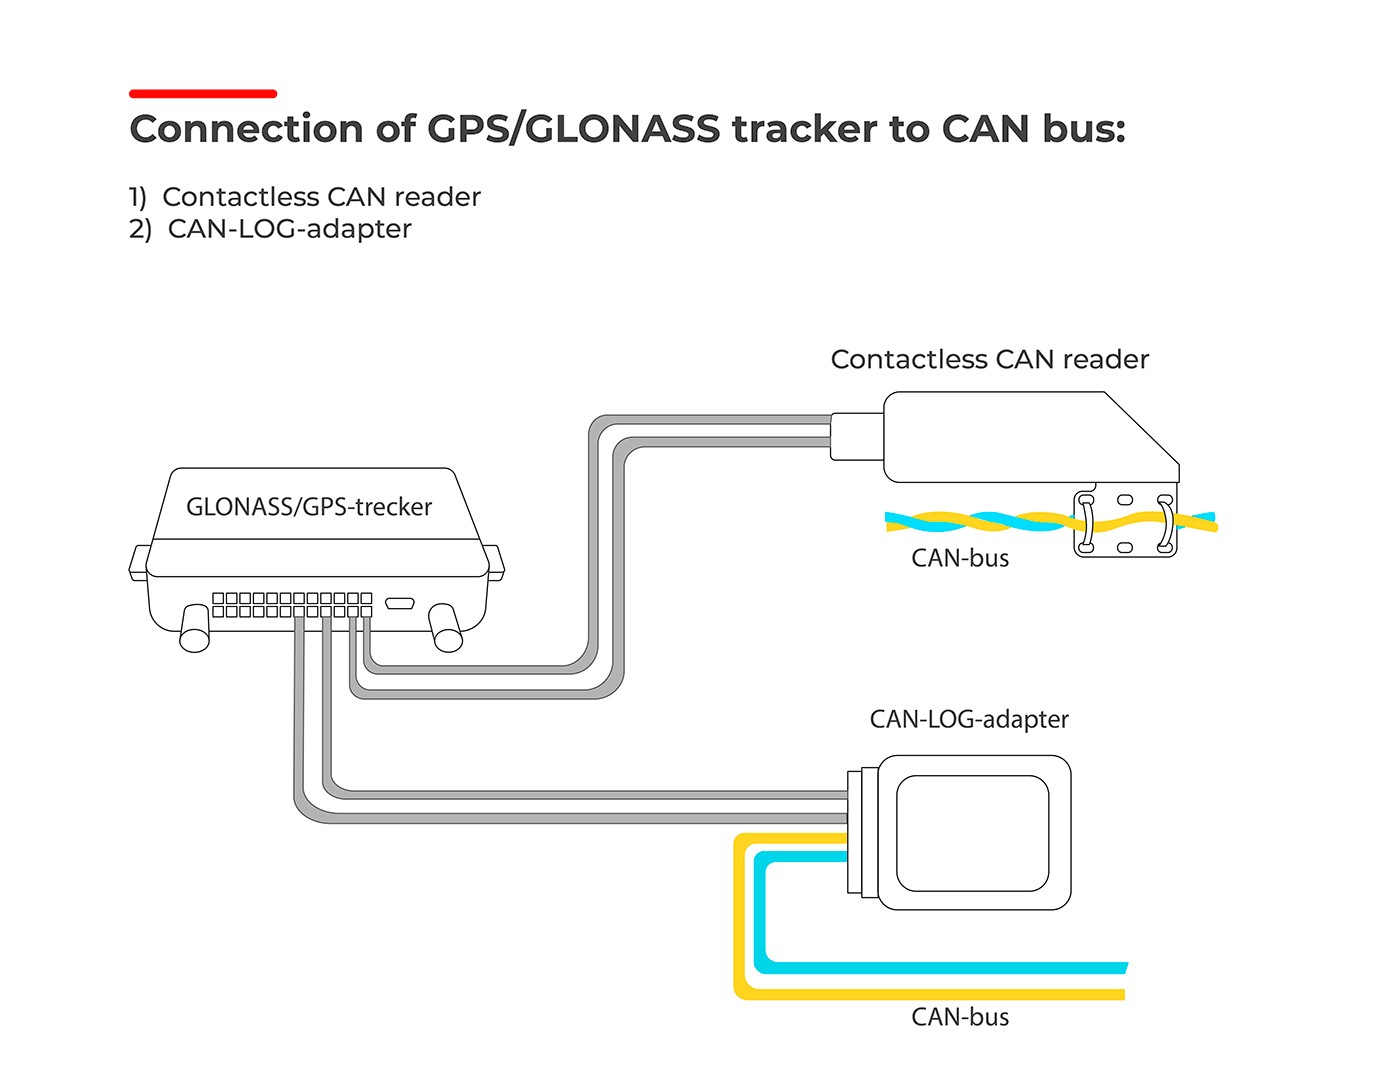 Connecting GPS tracker to CAN bus